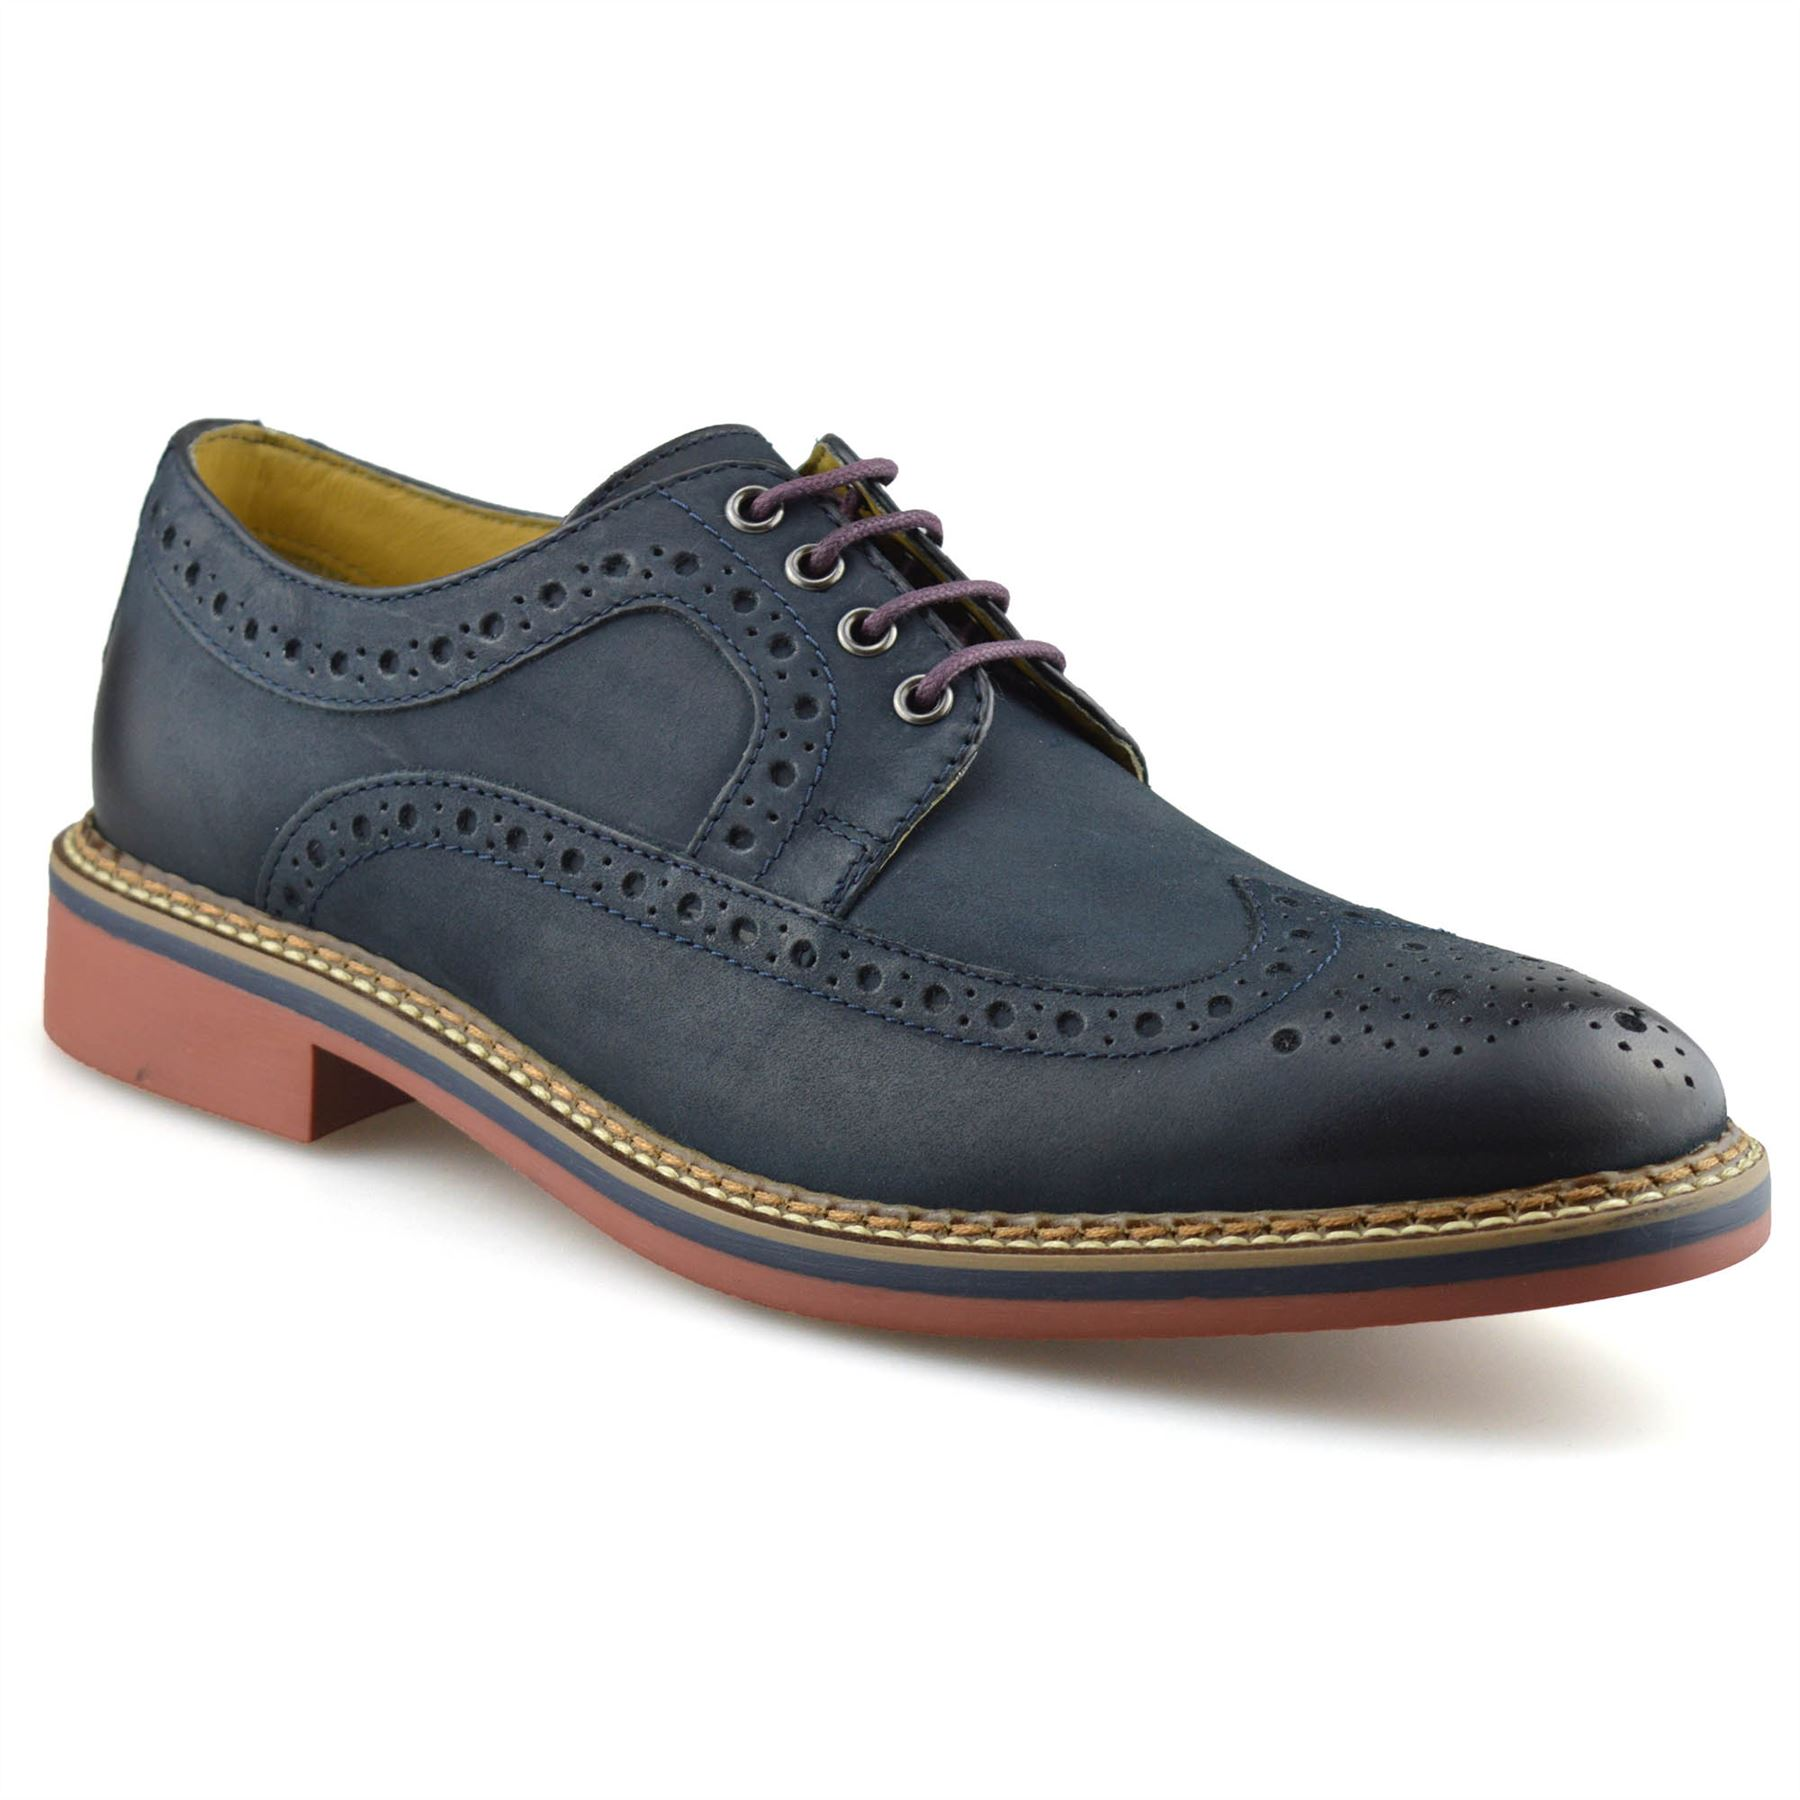 Mens-New-Ikon-Leather-Casual-Smart-Lace-Up-Oxford-Brogues-Work-Office-Shoes-Size thumbnail 19